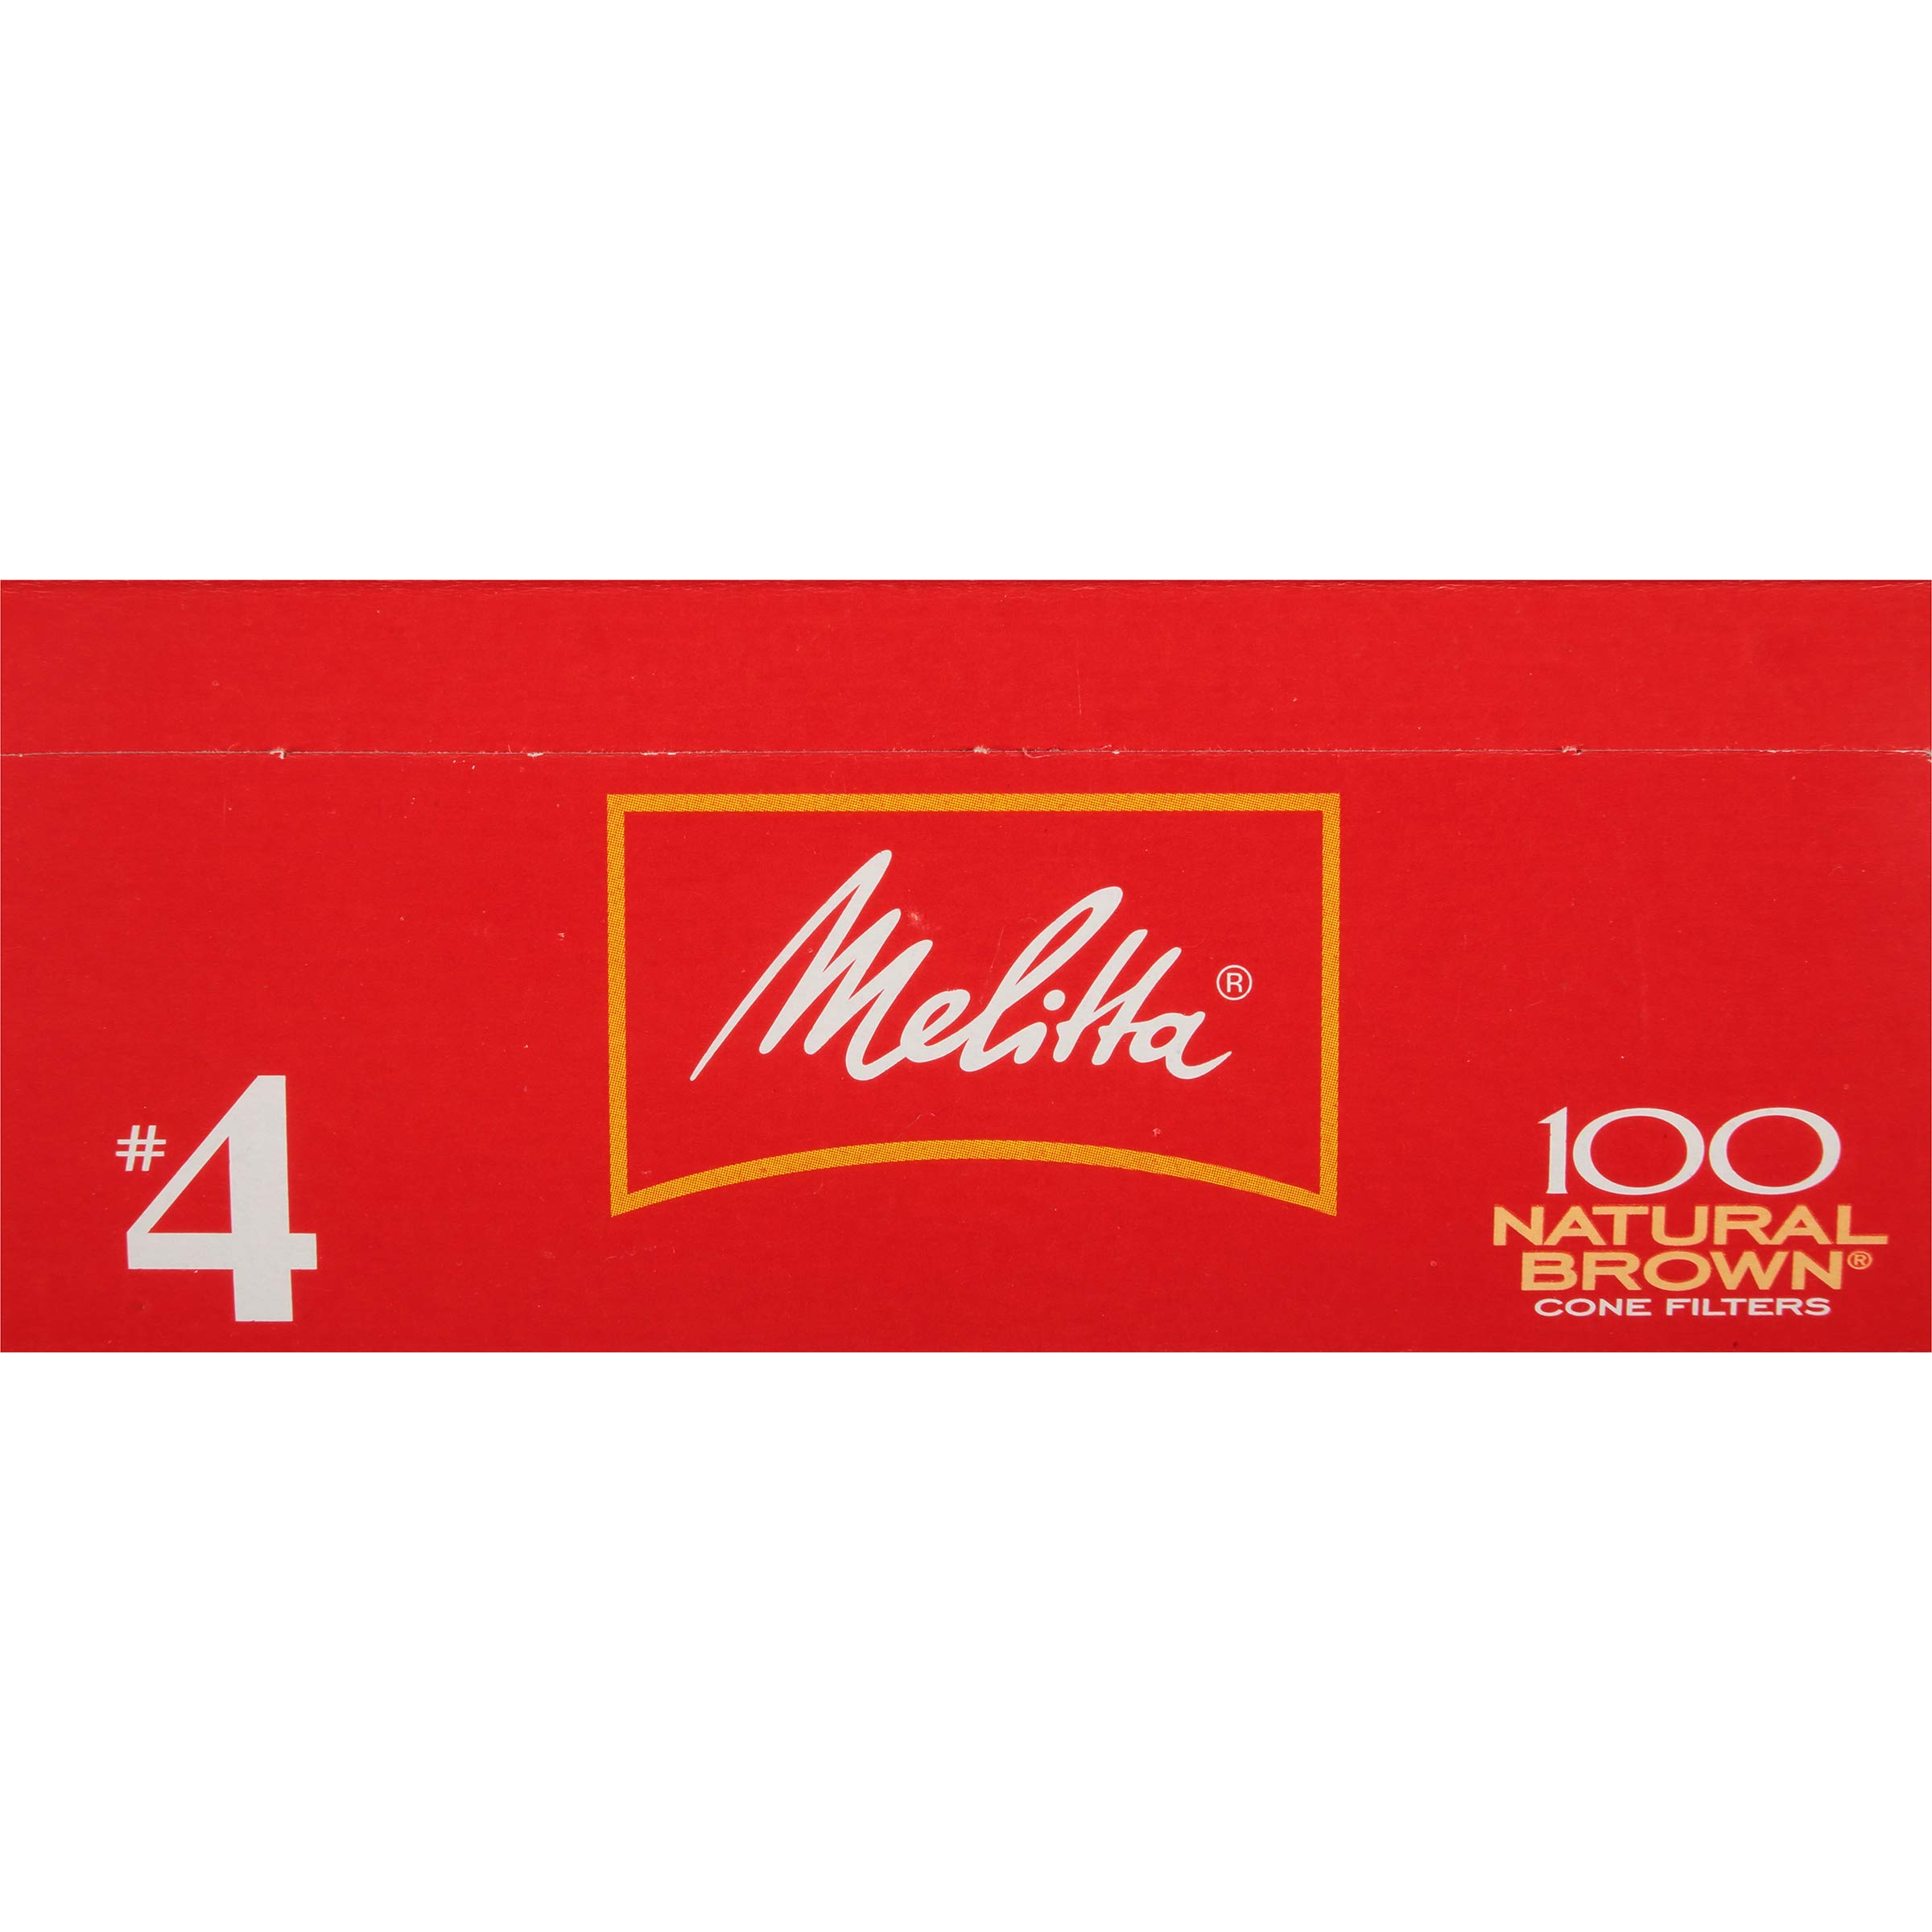 Melitta (62445C) Super Premium No. 4 Cone Coffee Filters, Natural Brown, 100 Count (Pack of 6) by Melitta (Image #3)